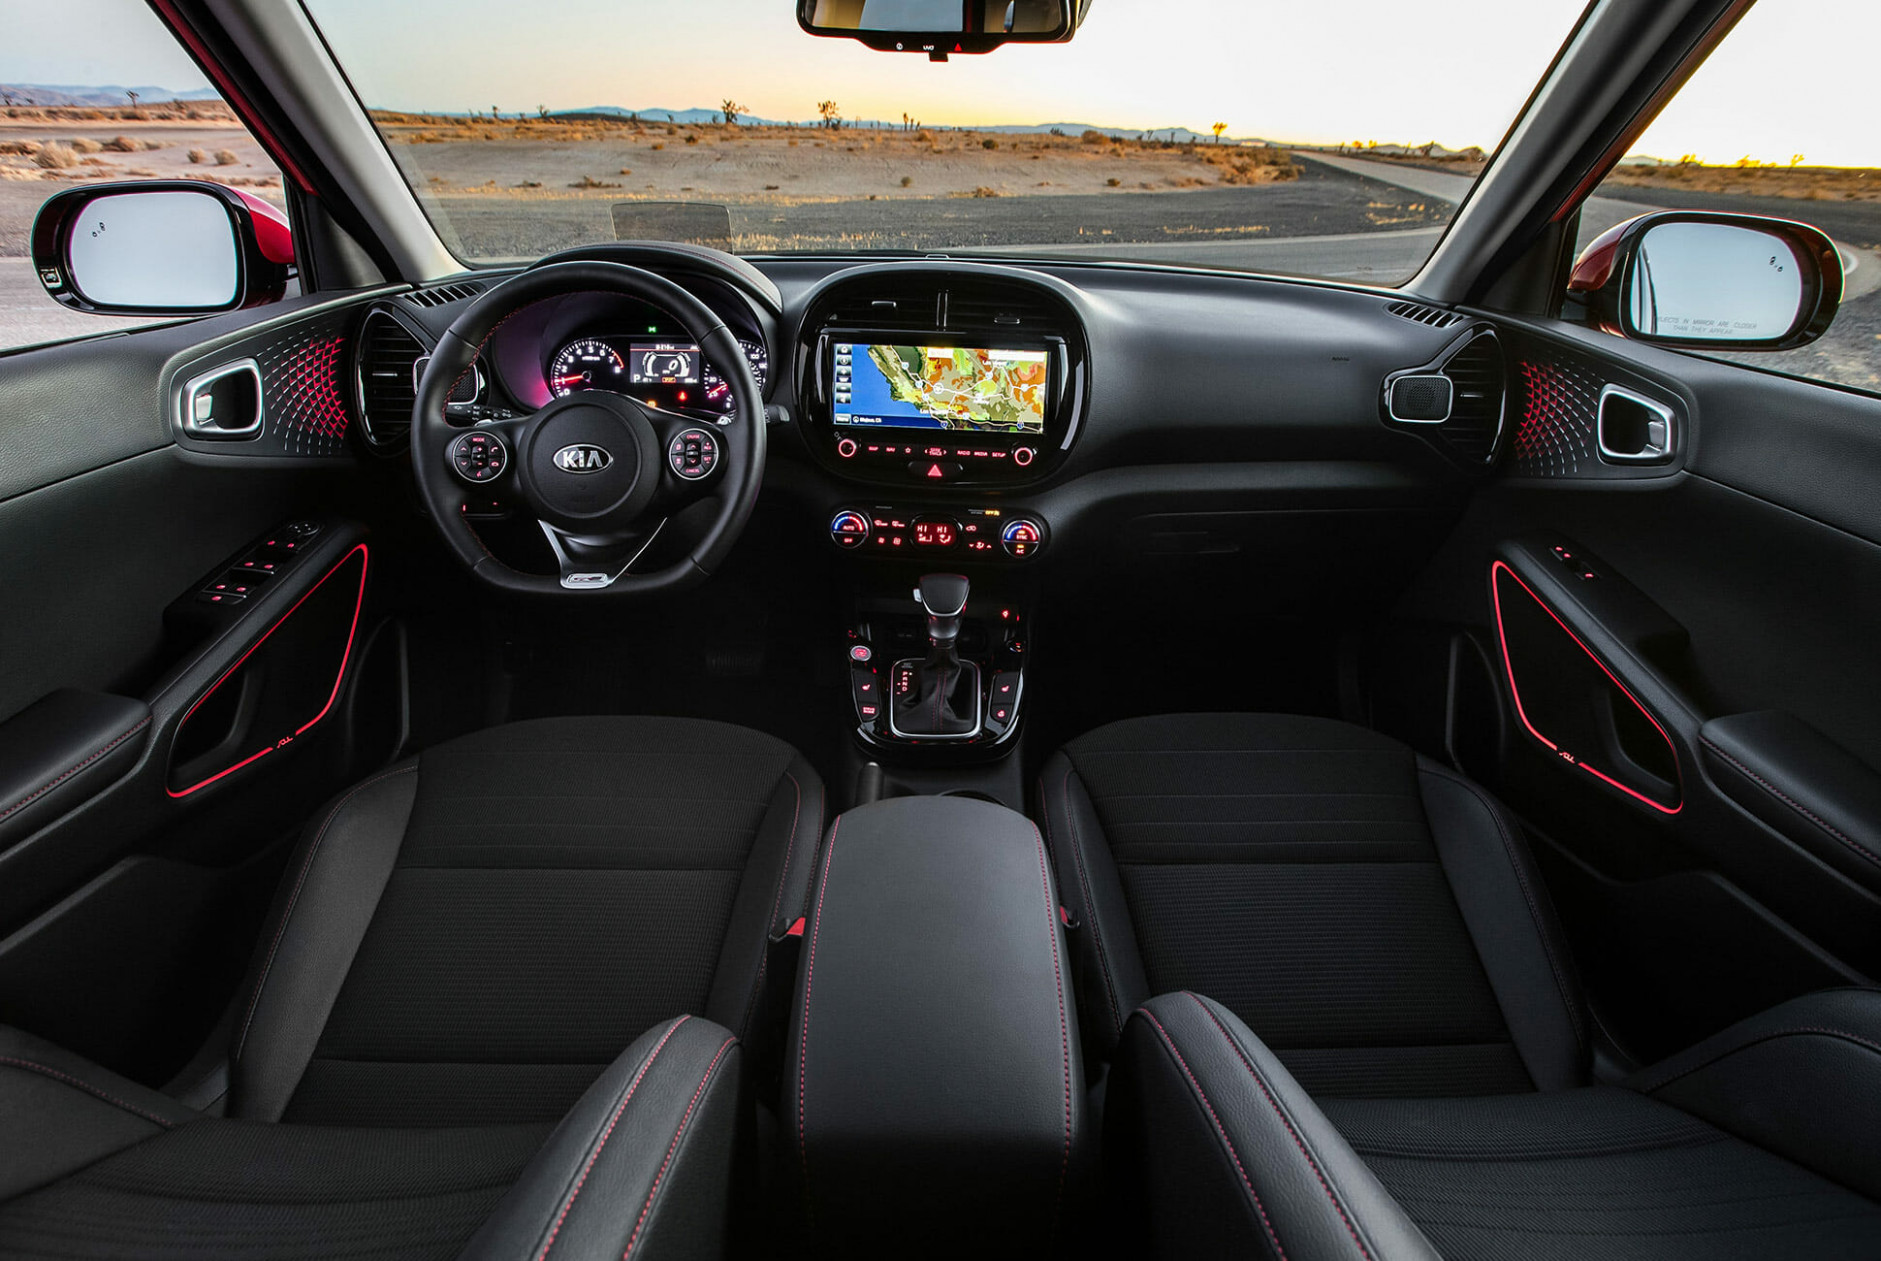 10 Kia Soul Review: Style and Value in a To-Go Box • Gear Patrol - 2020 kia manual transmission